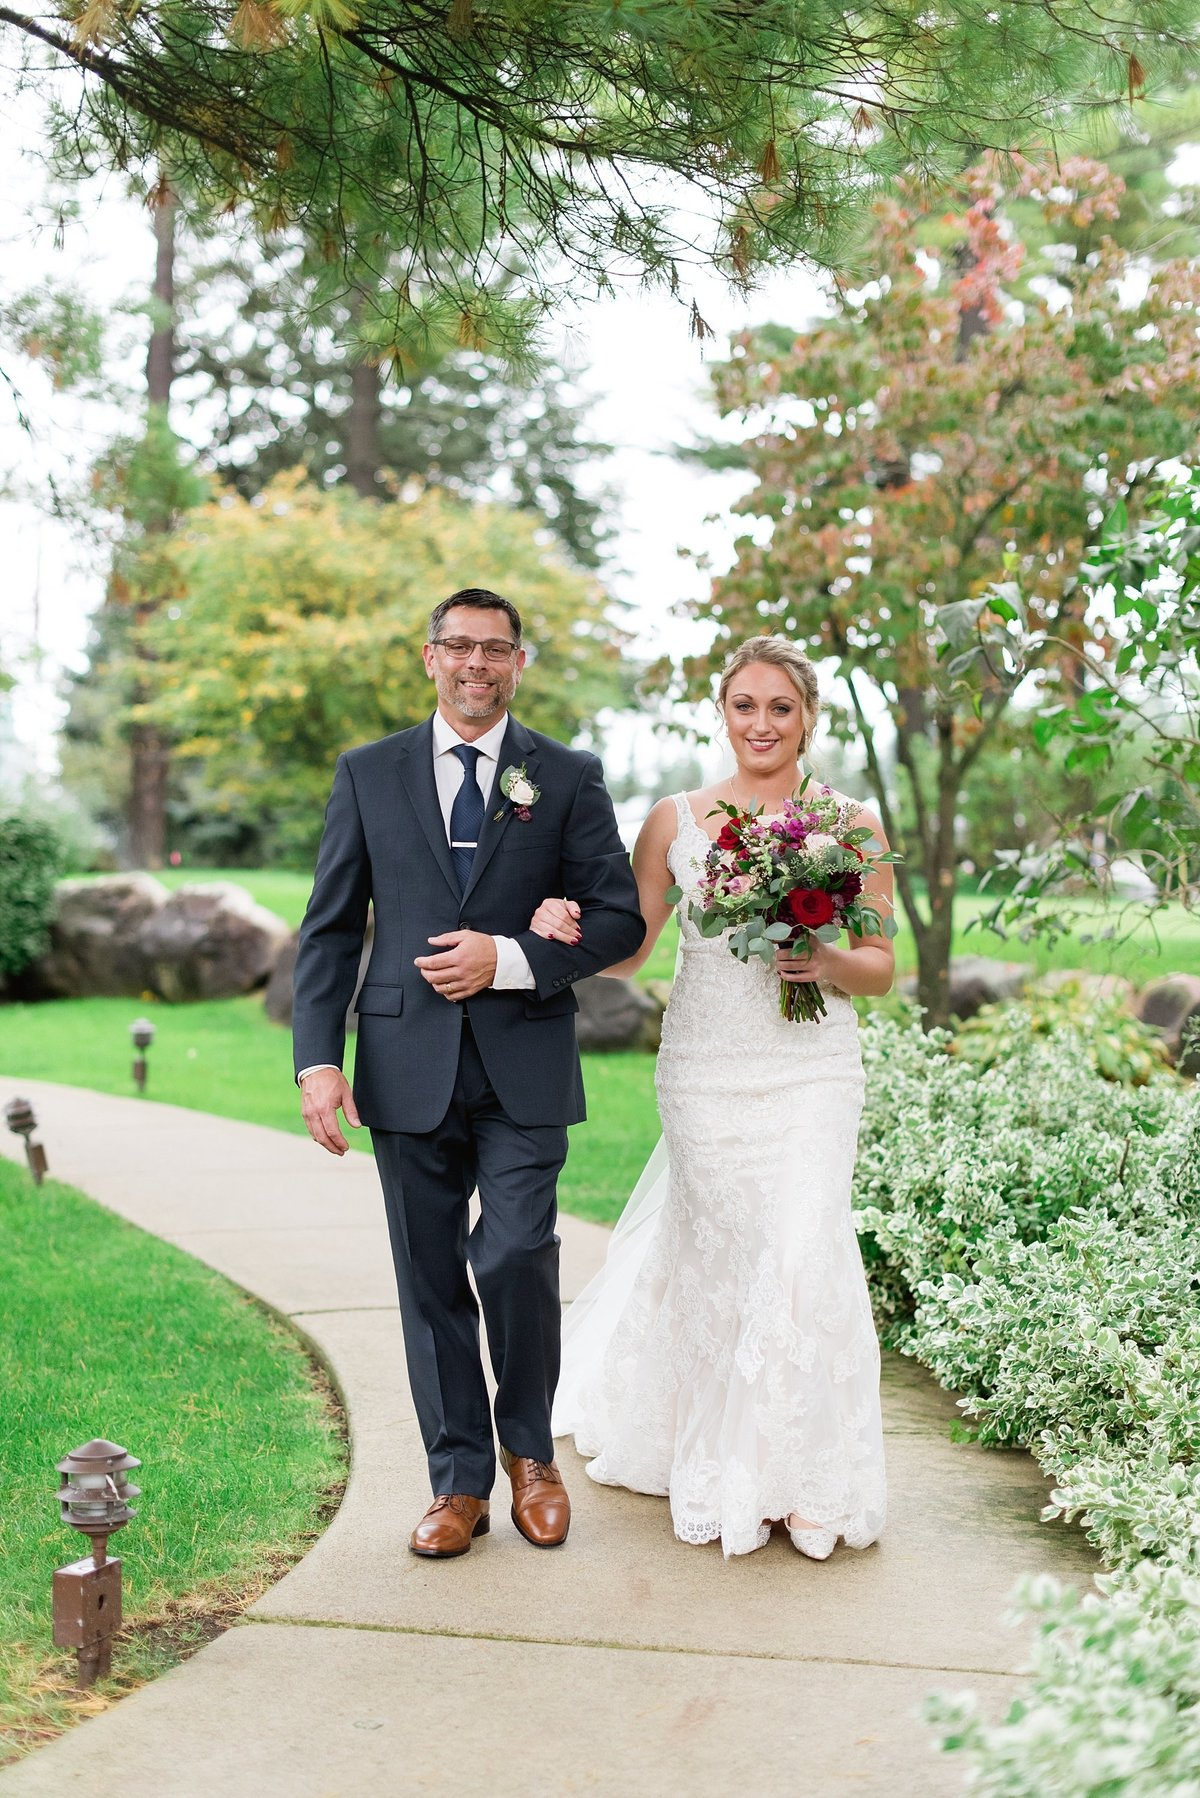 Jordan-Ben-Pine-Knob-Mansion-Clarkston-Michigan-Wedding-Breanne-Rochelle-Photography45